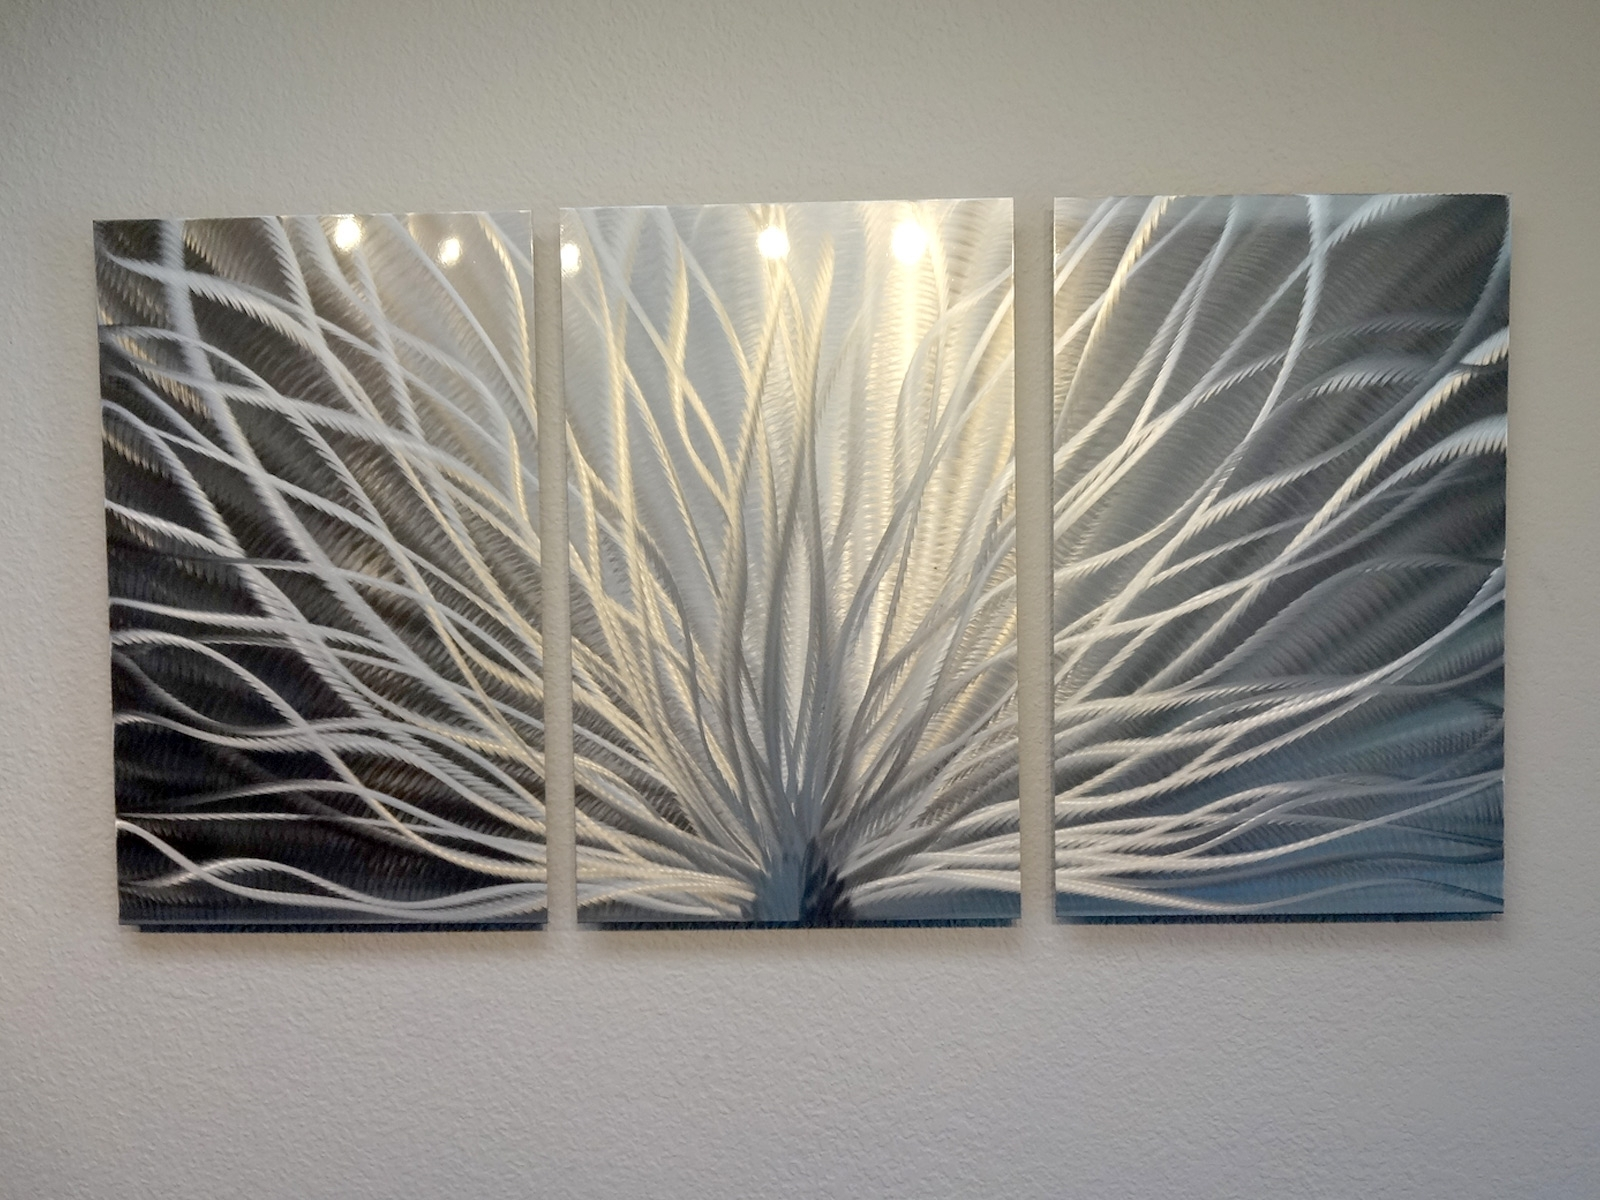 Radiance – 3 Panel Metal Wall Art Abstract Contemporary Modern With Current Abstract Metal Wall Art Panels (View 5 of 20)